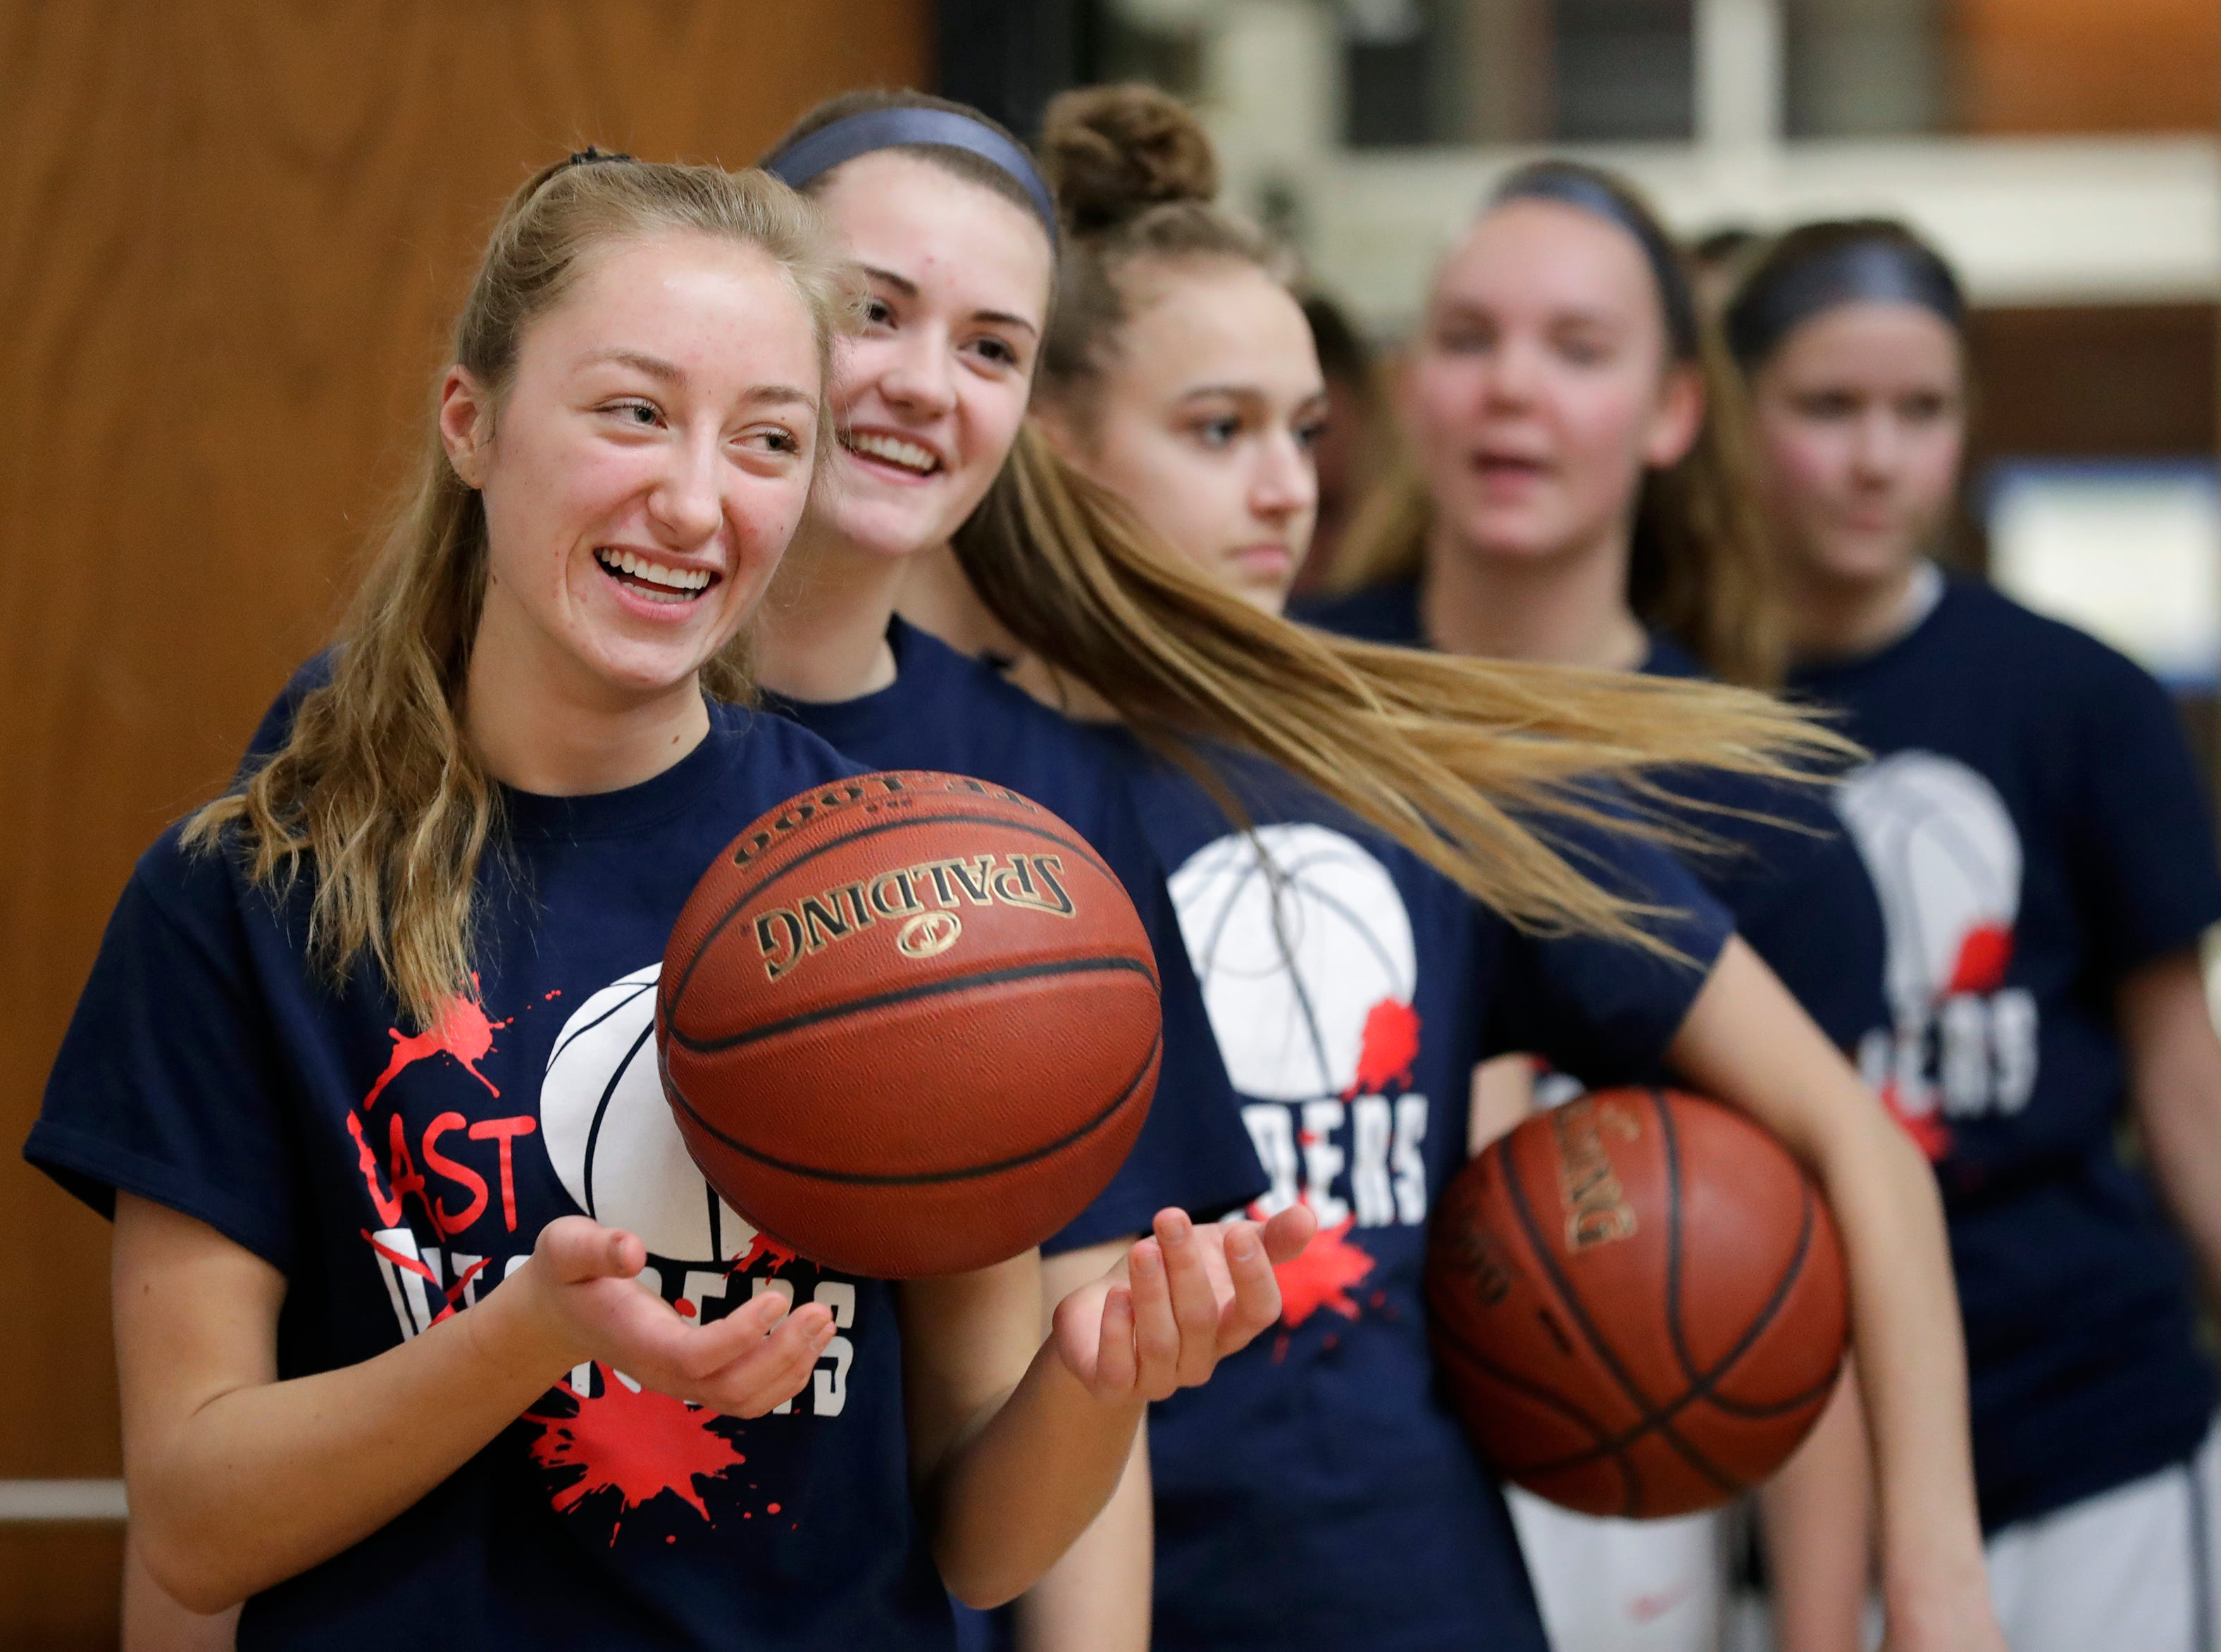 Appleton East High School's Cameron Neubauer and her teammates are ready to play against Appleton West High School prior to the start of their girls basketball game Friday, January 11, 2019, at Appleton East High School in Appleton, Wis. 